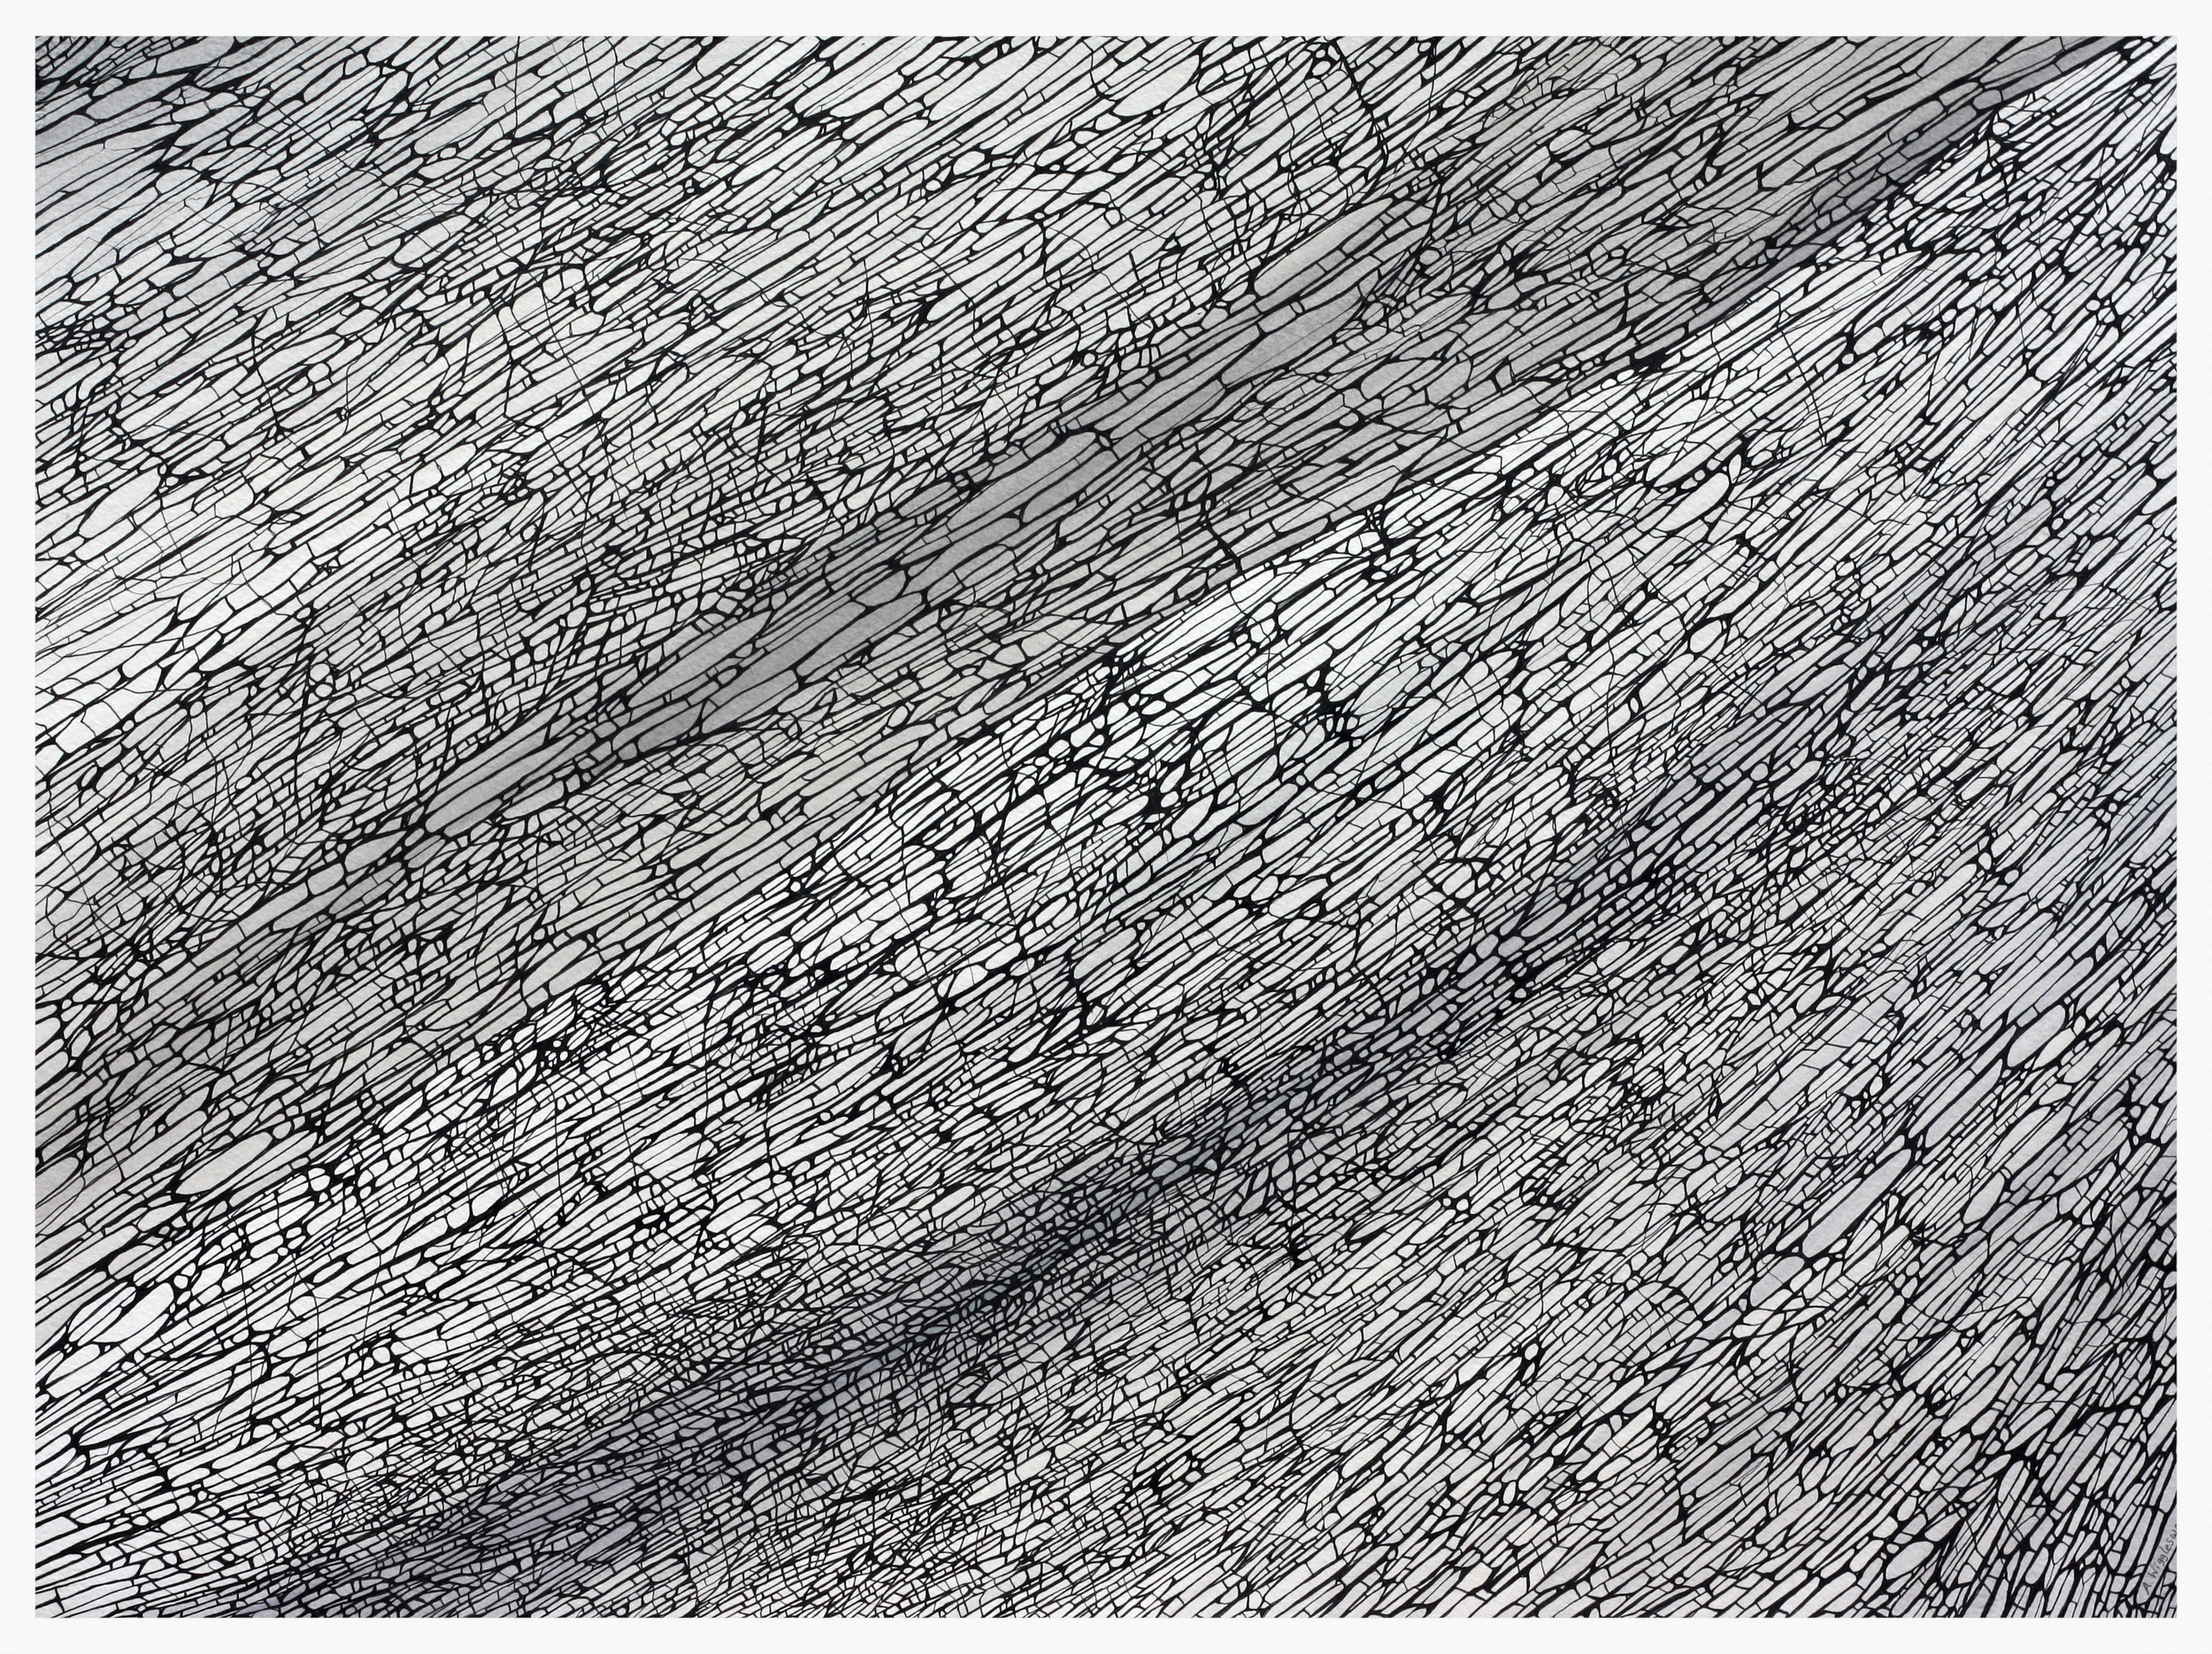 Divergence - 2   39 cm x 64 cm    © Anthony Wigglesworth - All Rights Reserved